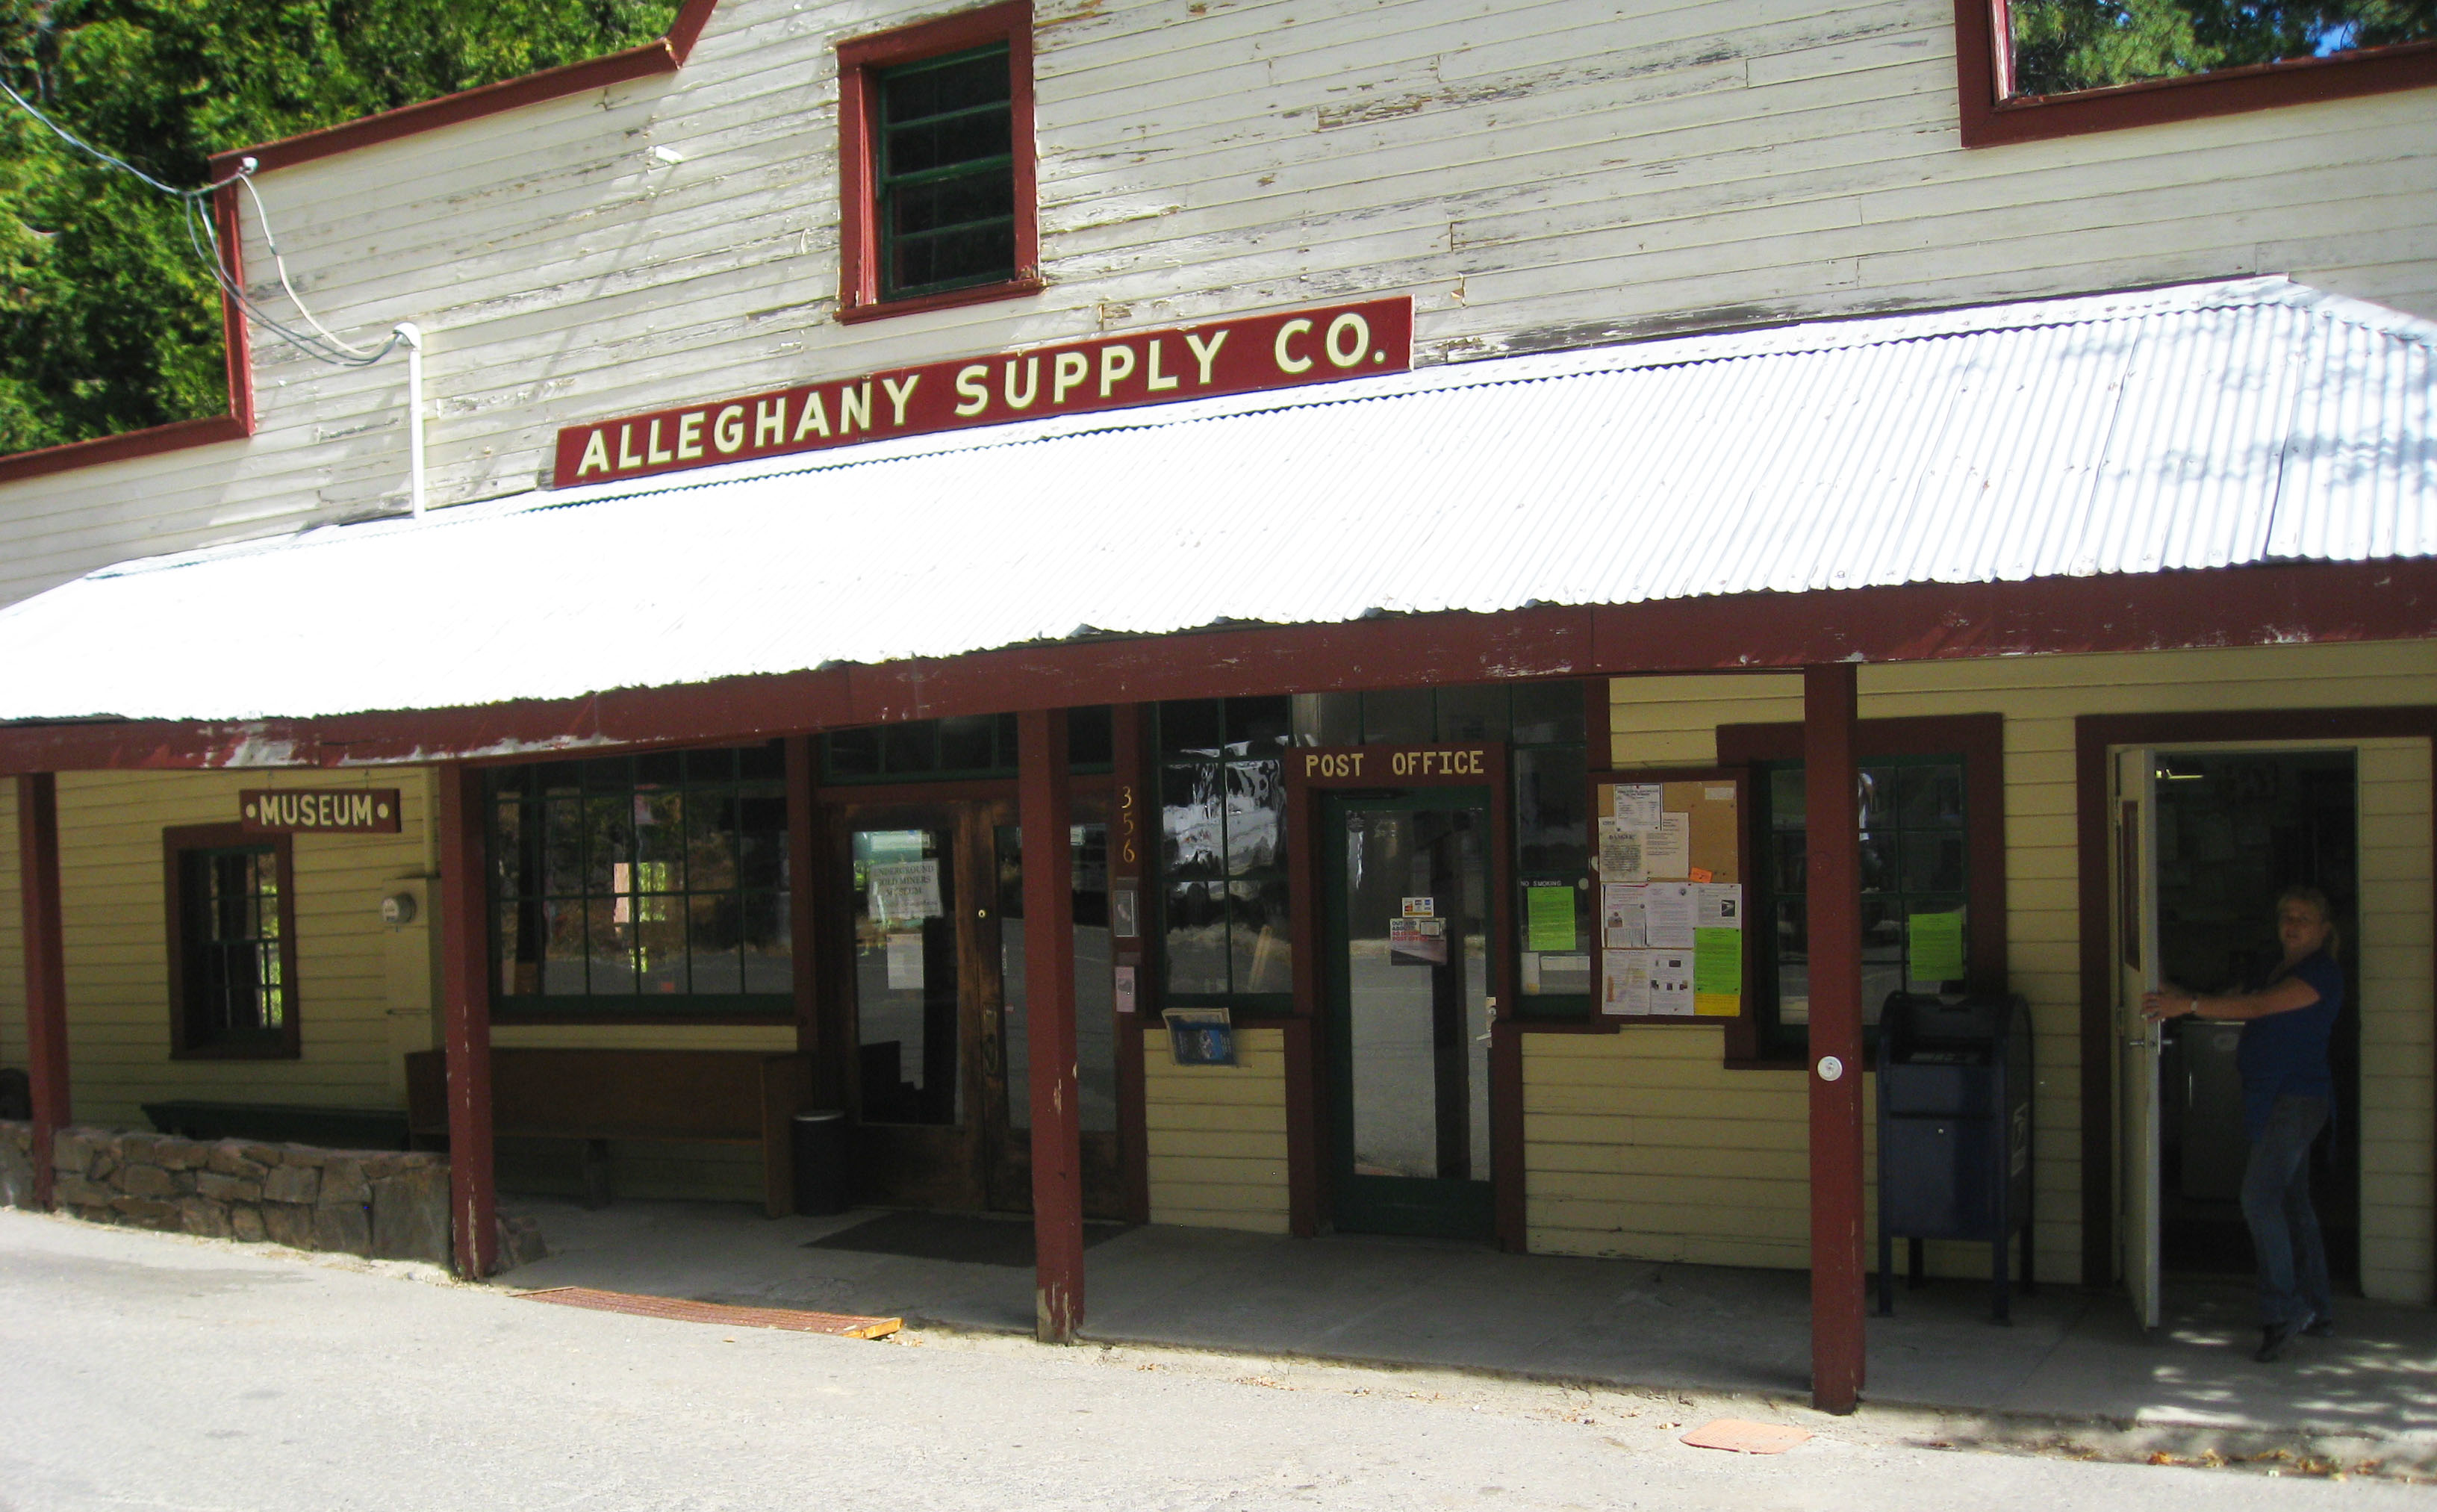 Alleghany Supply Co.